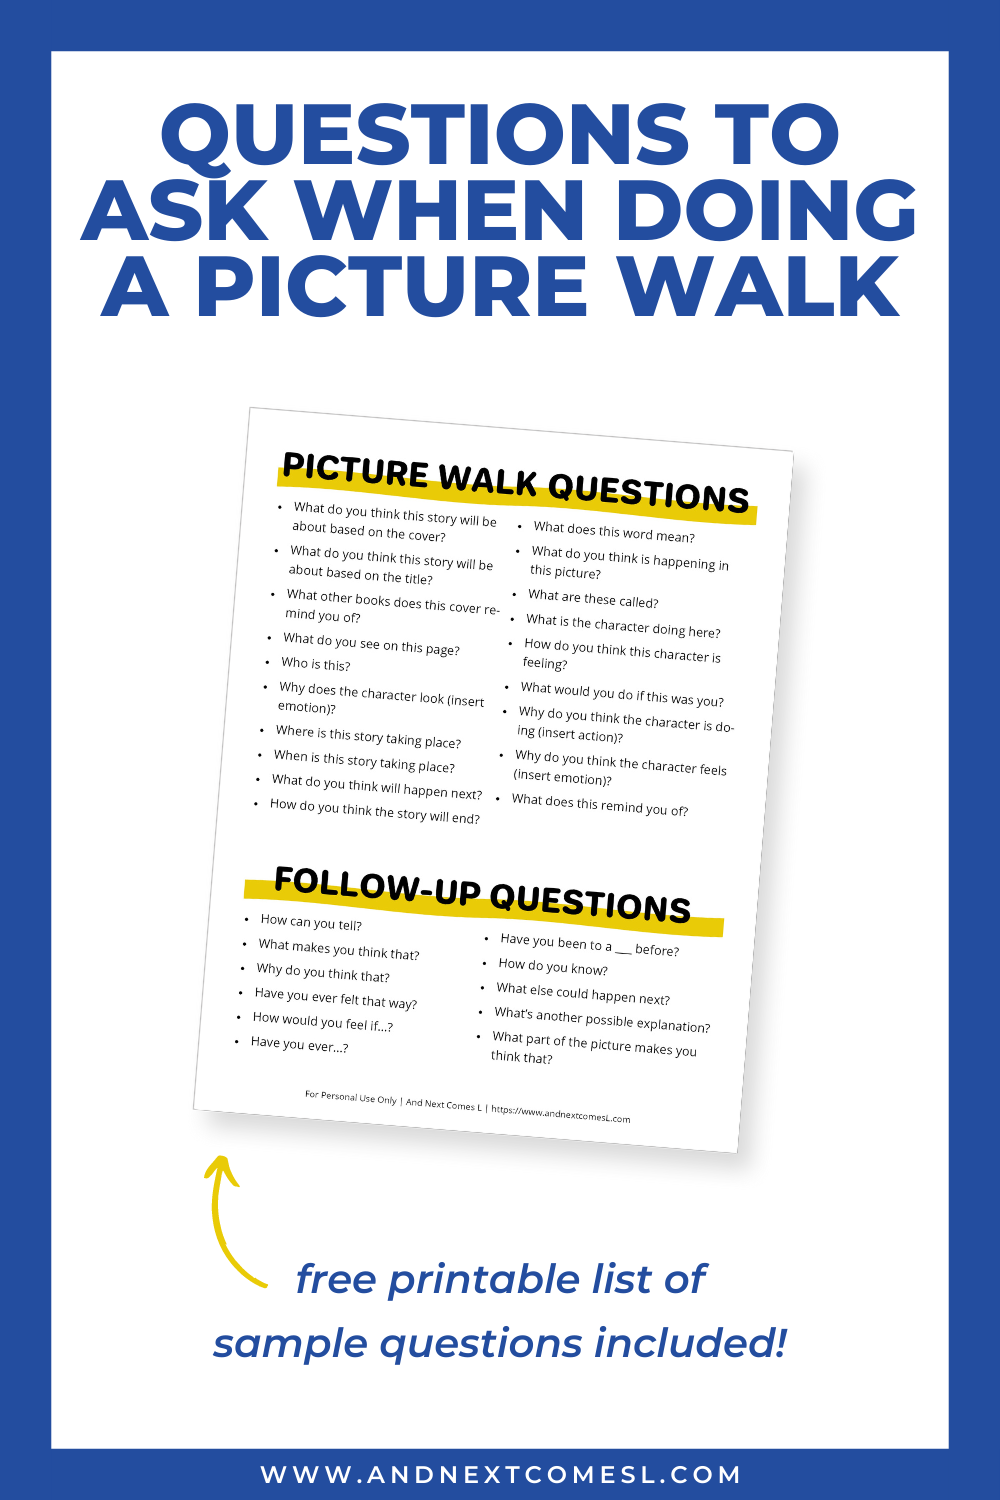 Free printable list of sample questions to ask when doing a picture walk with kids